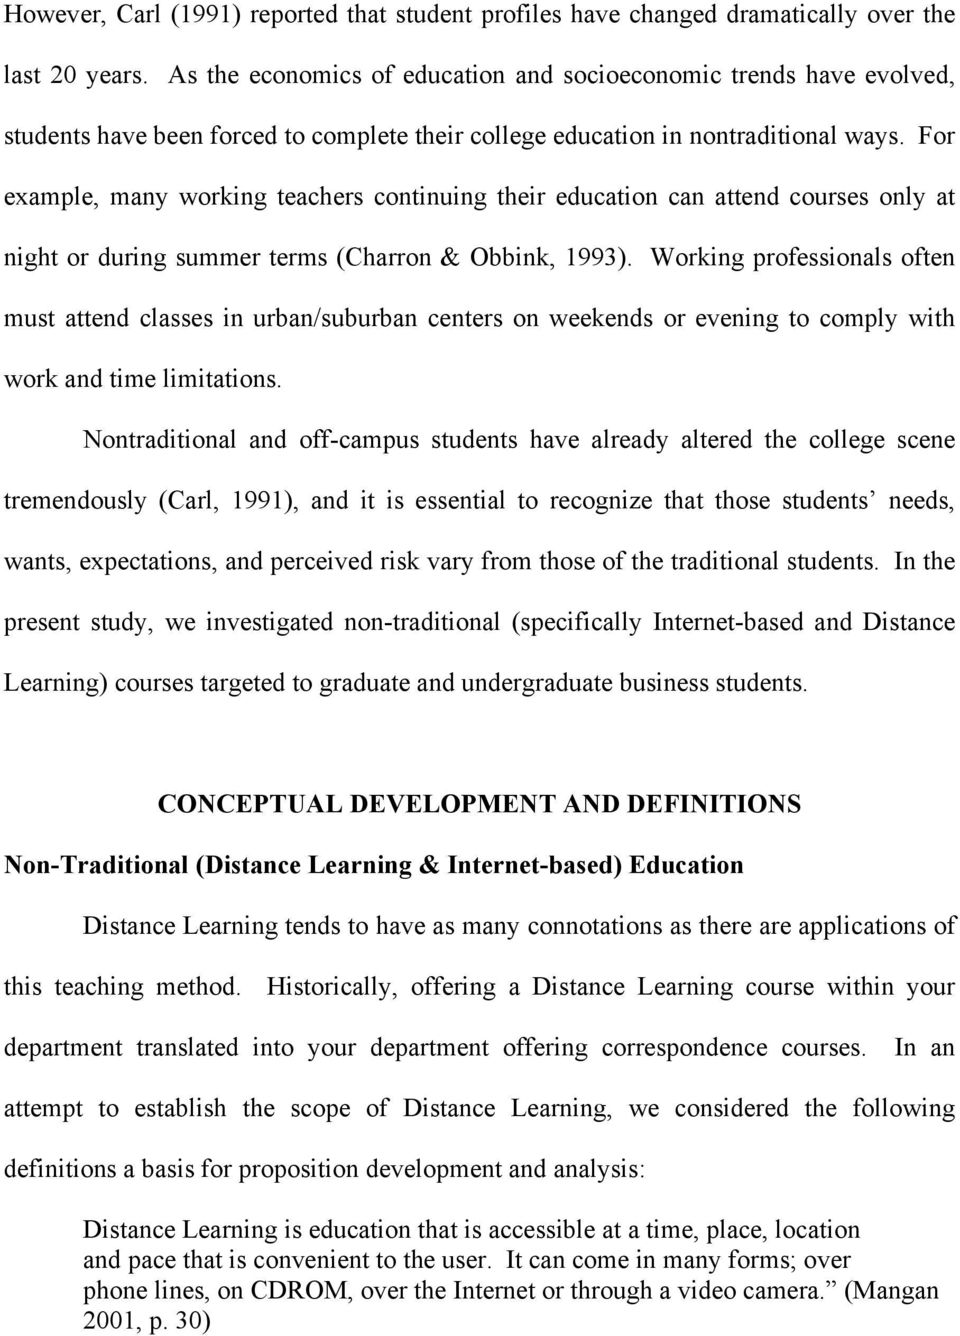 For example, many working teachers continuing their education can attend courses only at night or during summer terms (Charron & Obbink, 1993).